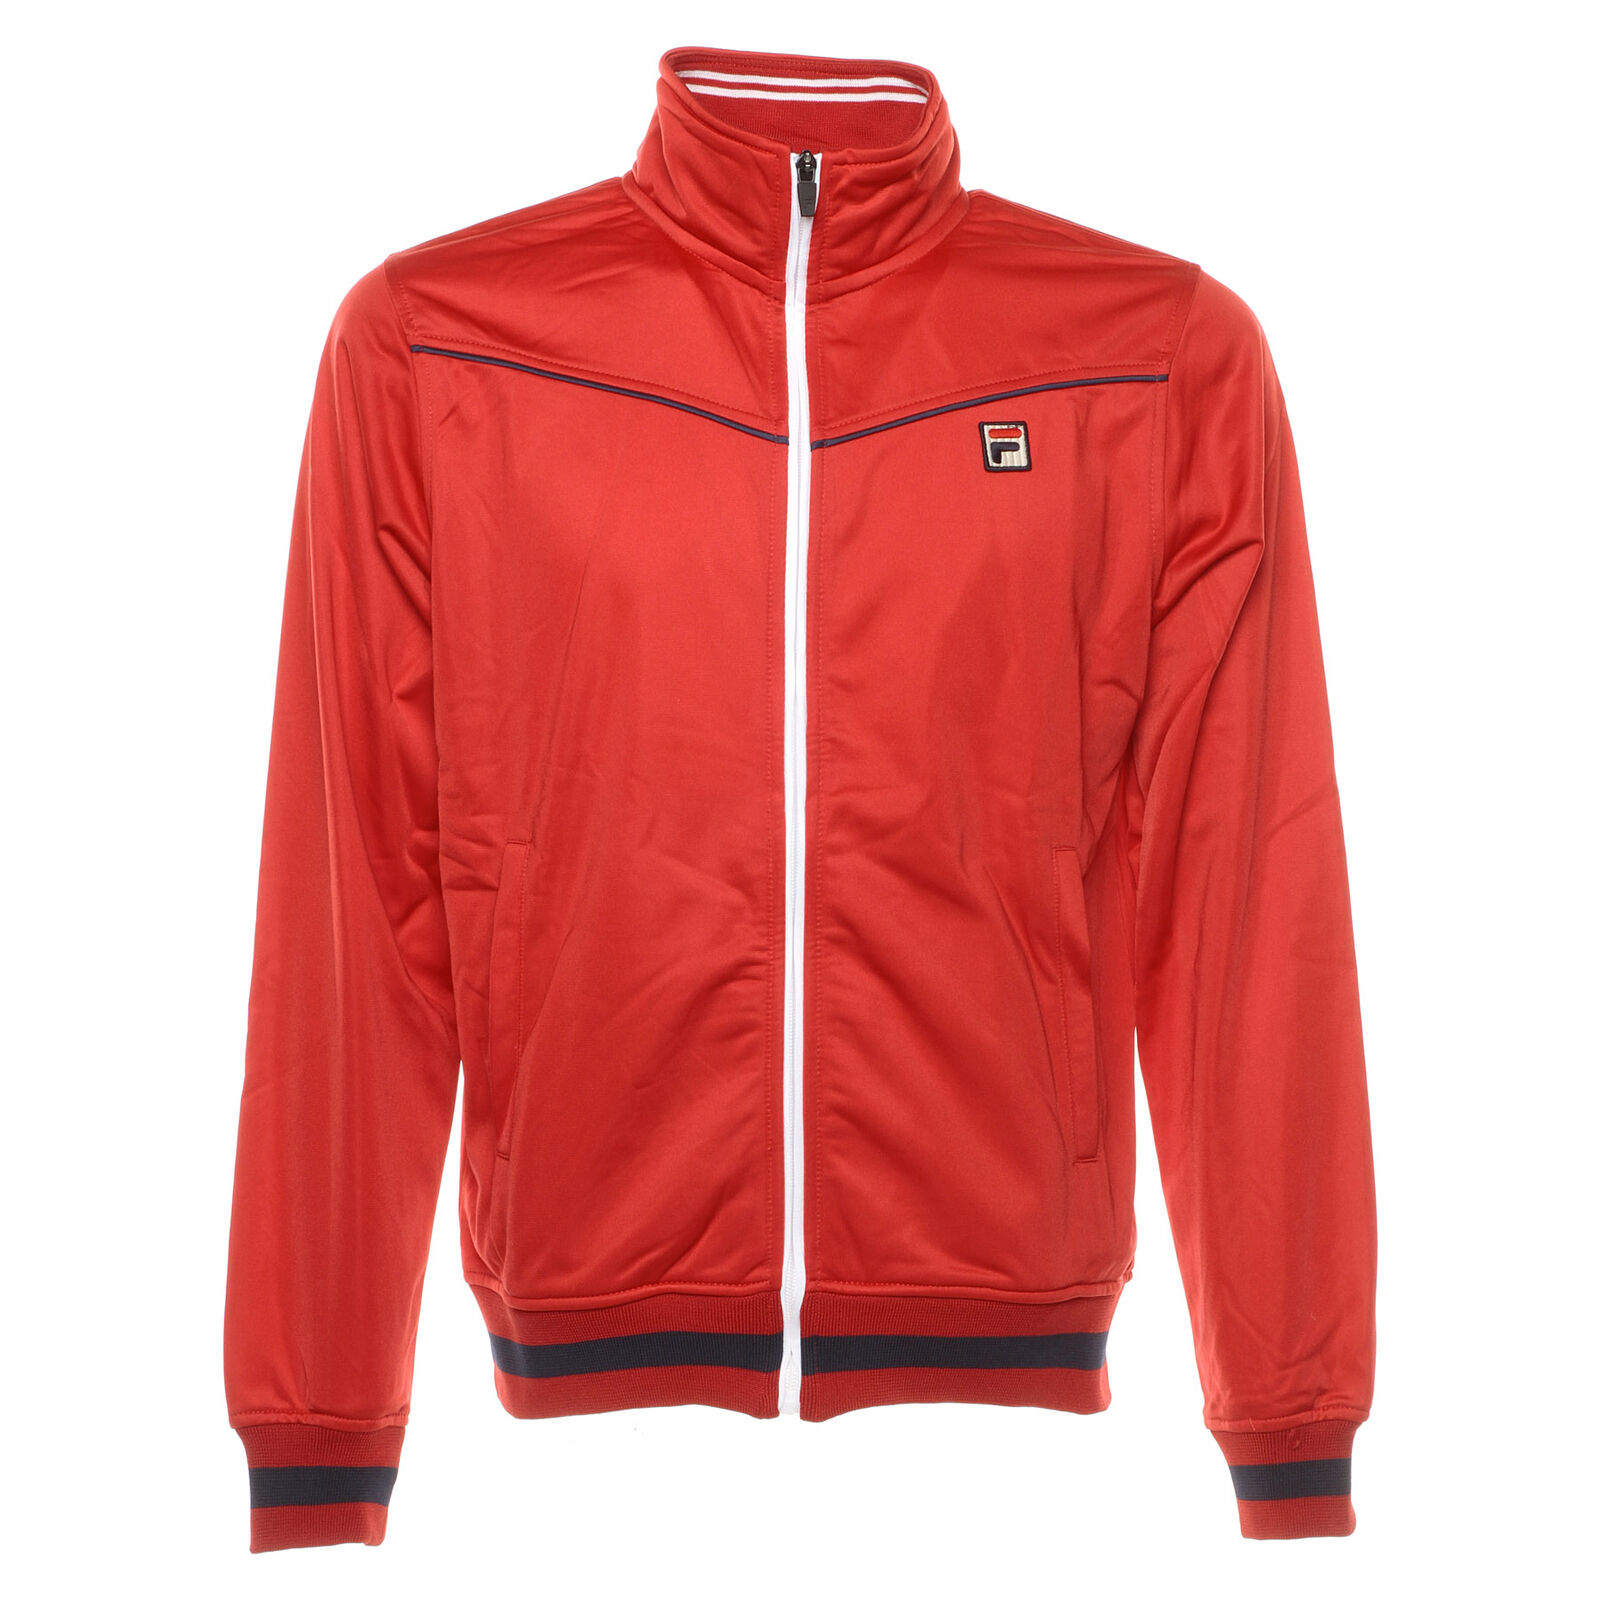 FILA FELPA TRIACETATO FELPA men 2038 0700